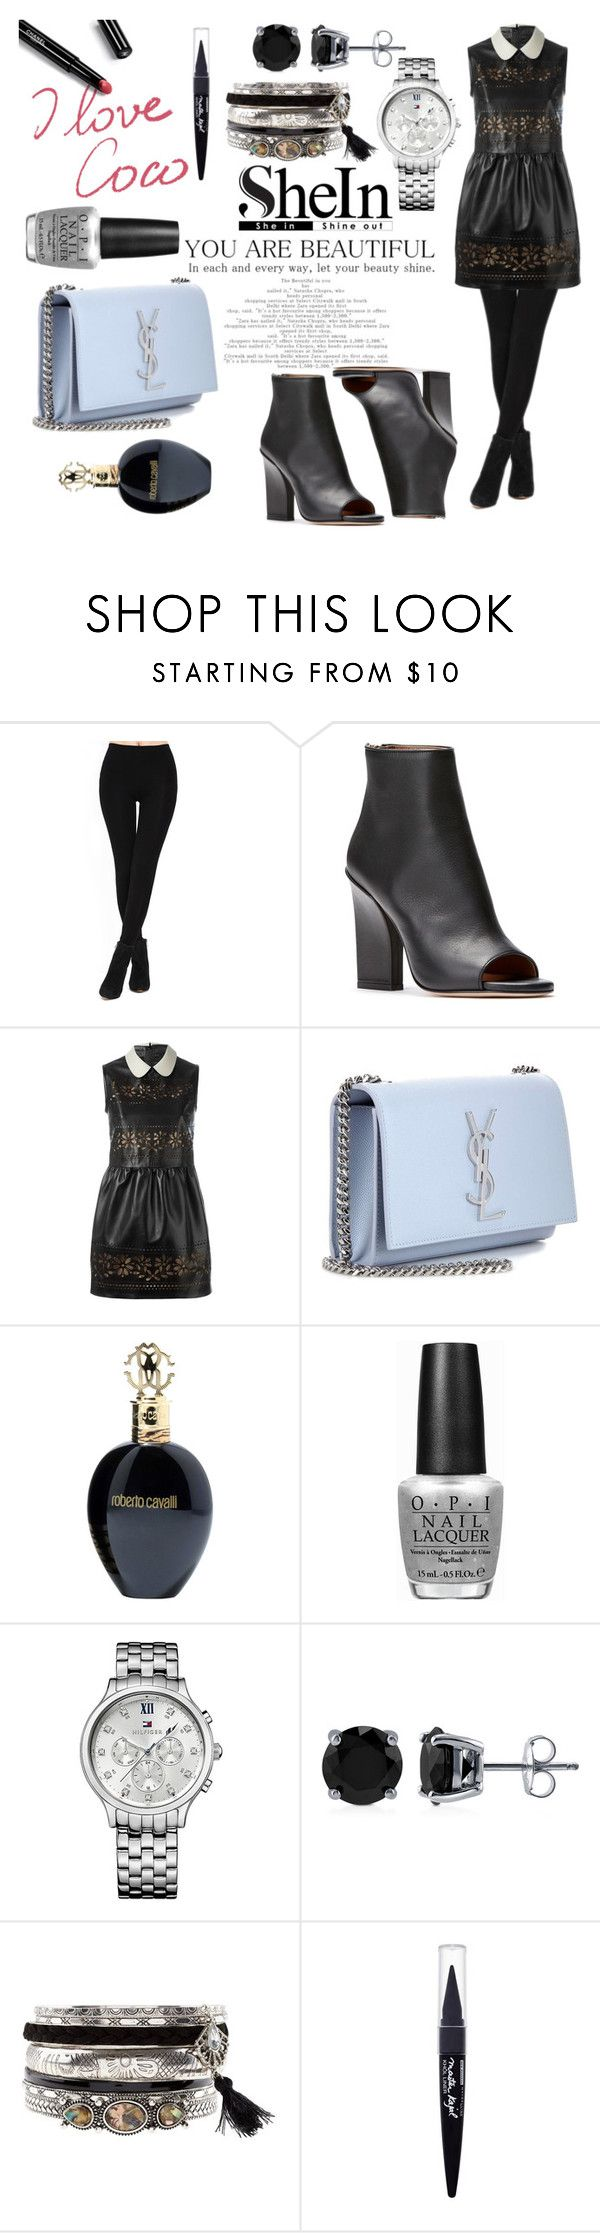 """Shine in Black"" by blackheaven on Polyvore featuring Yves Saint Laurent, Chanel, Roberto Cavalli, OPI, Tommy Hilfiger, BERRICLE and Maybelline"